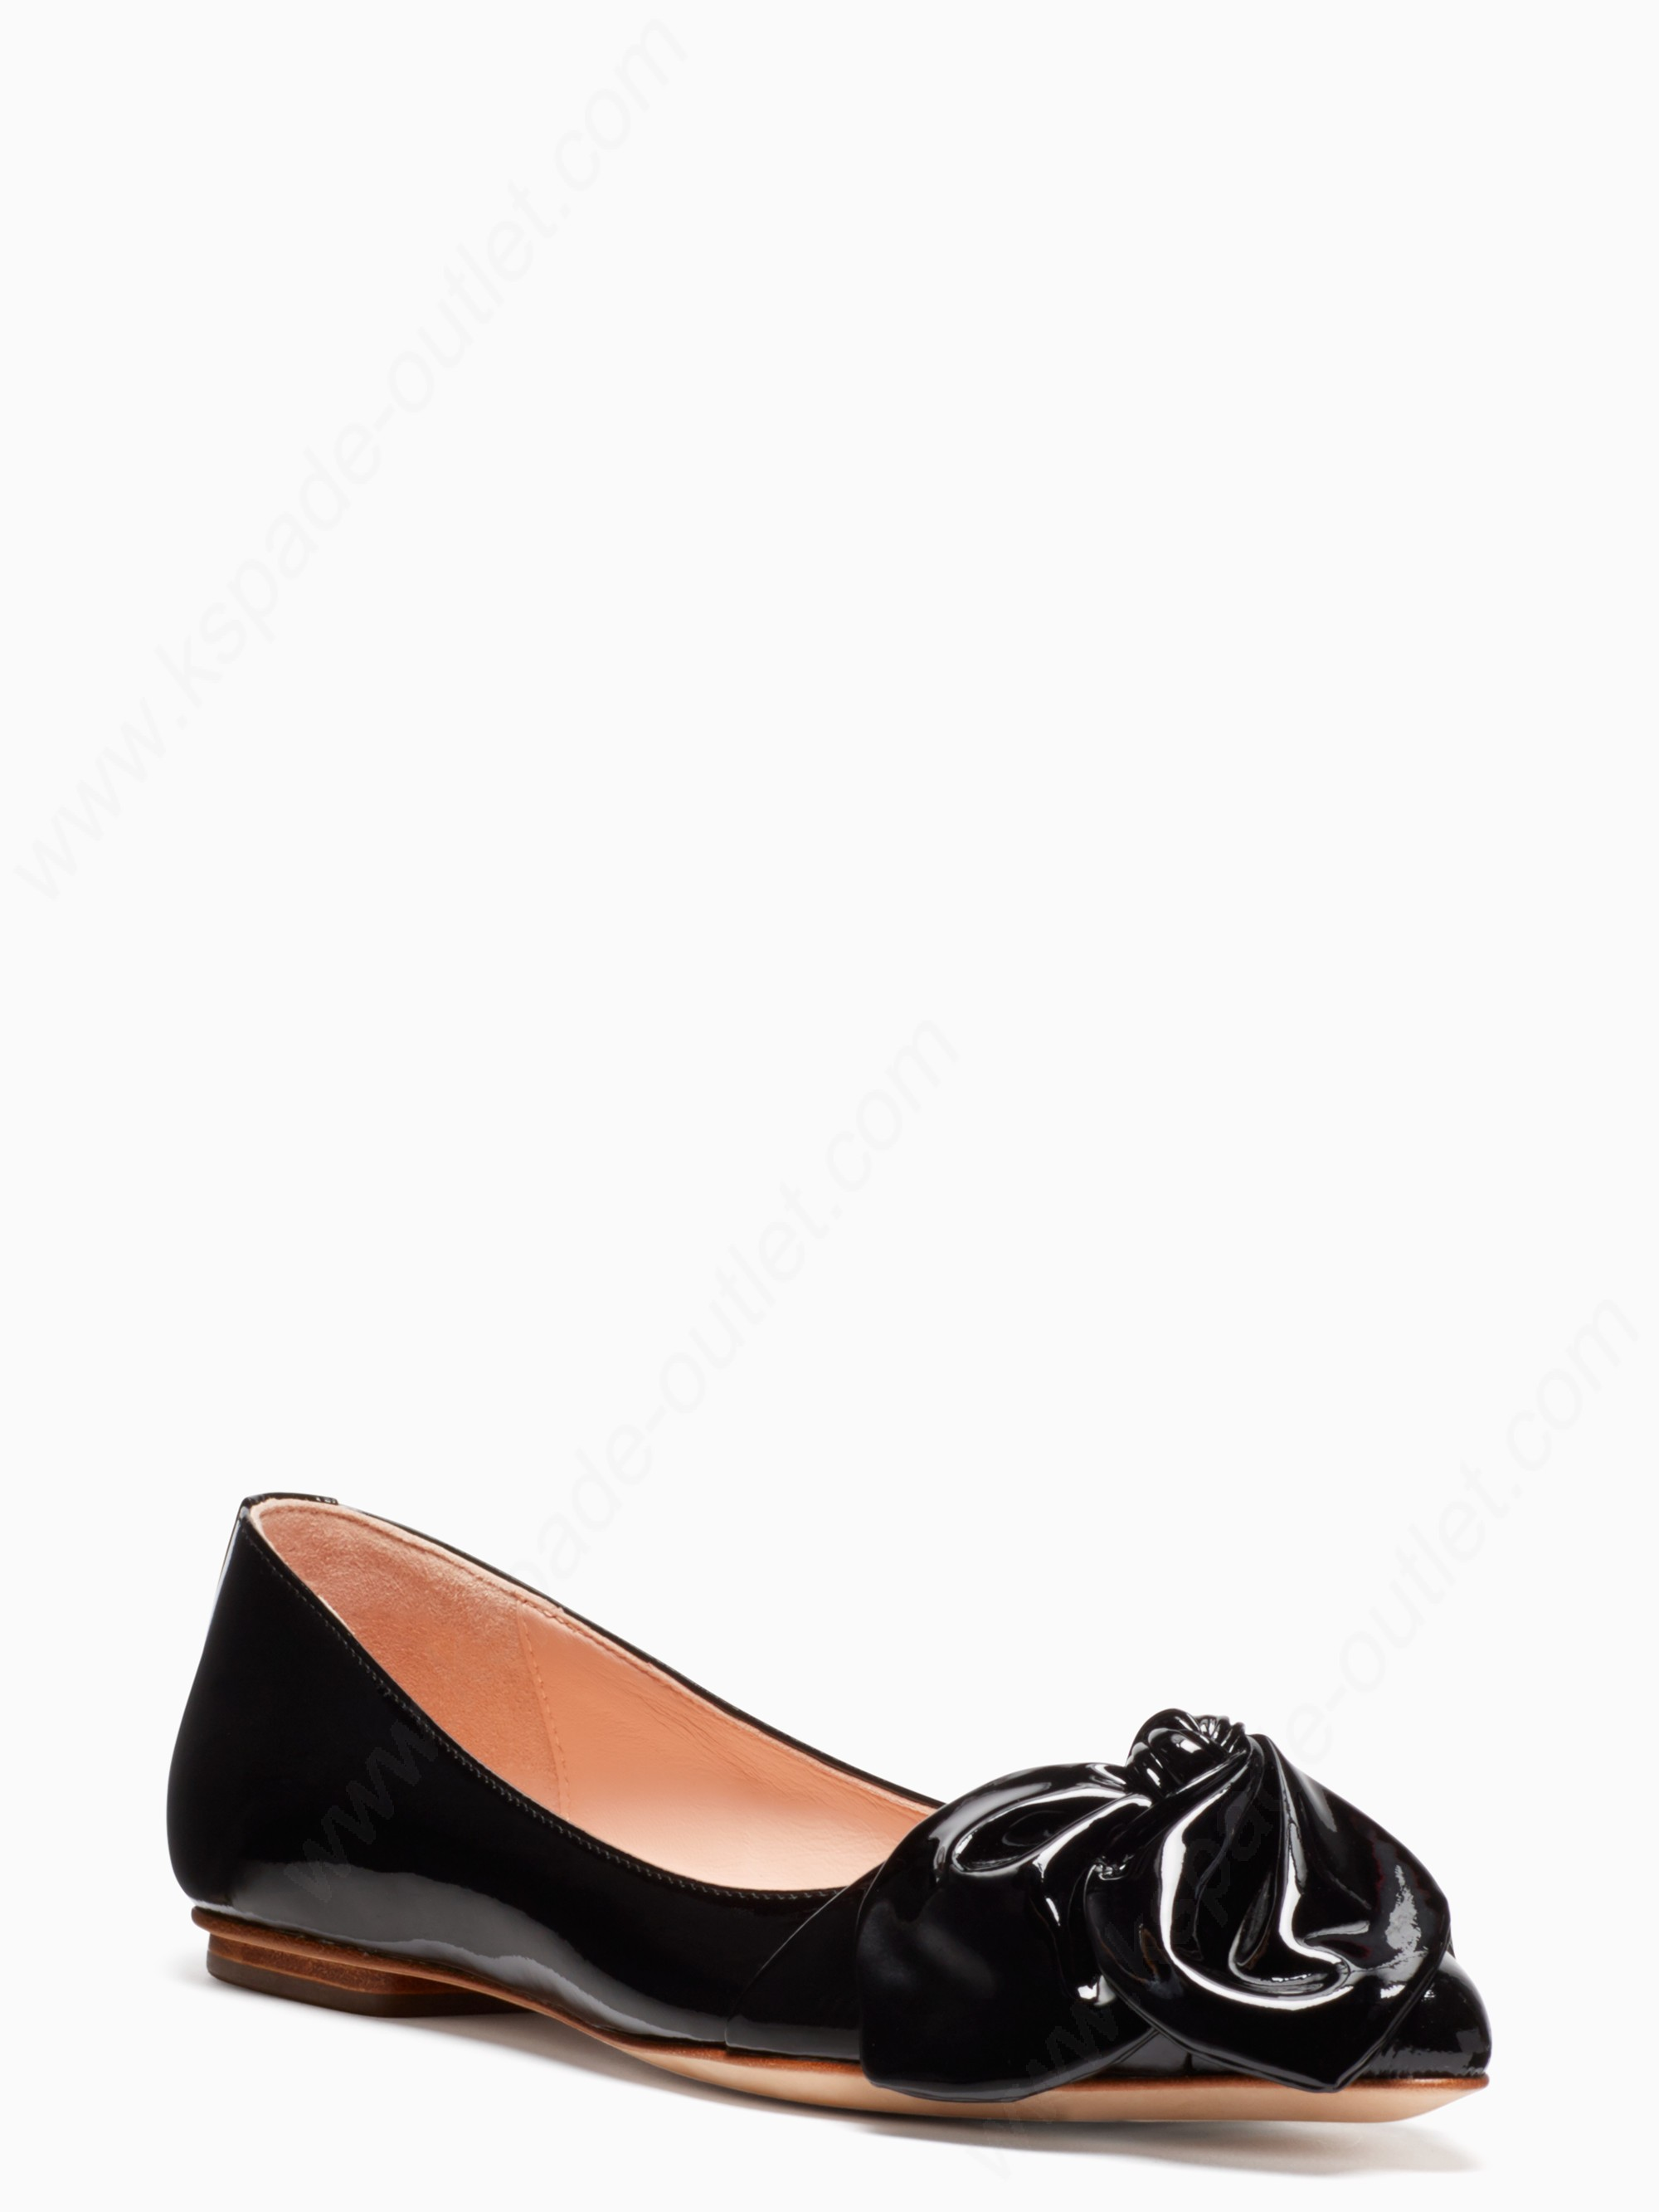 Kate Spade Women Sneaker Nancy Flats - Kate Spade Women Sneaker Nancy Flats